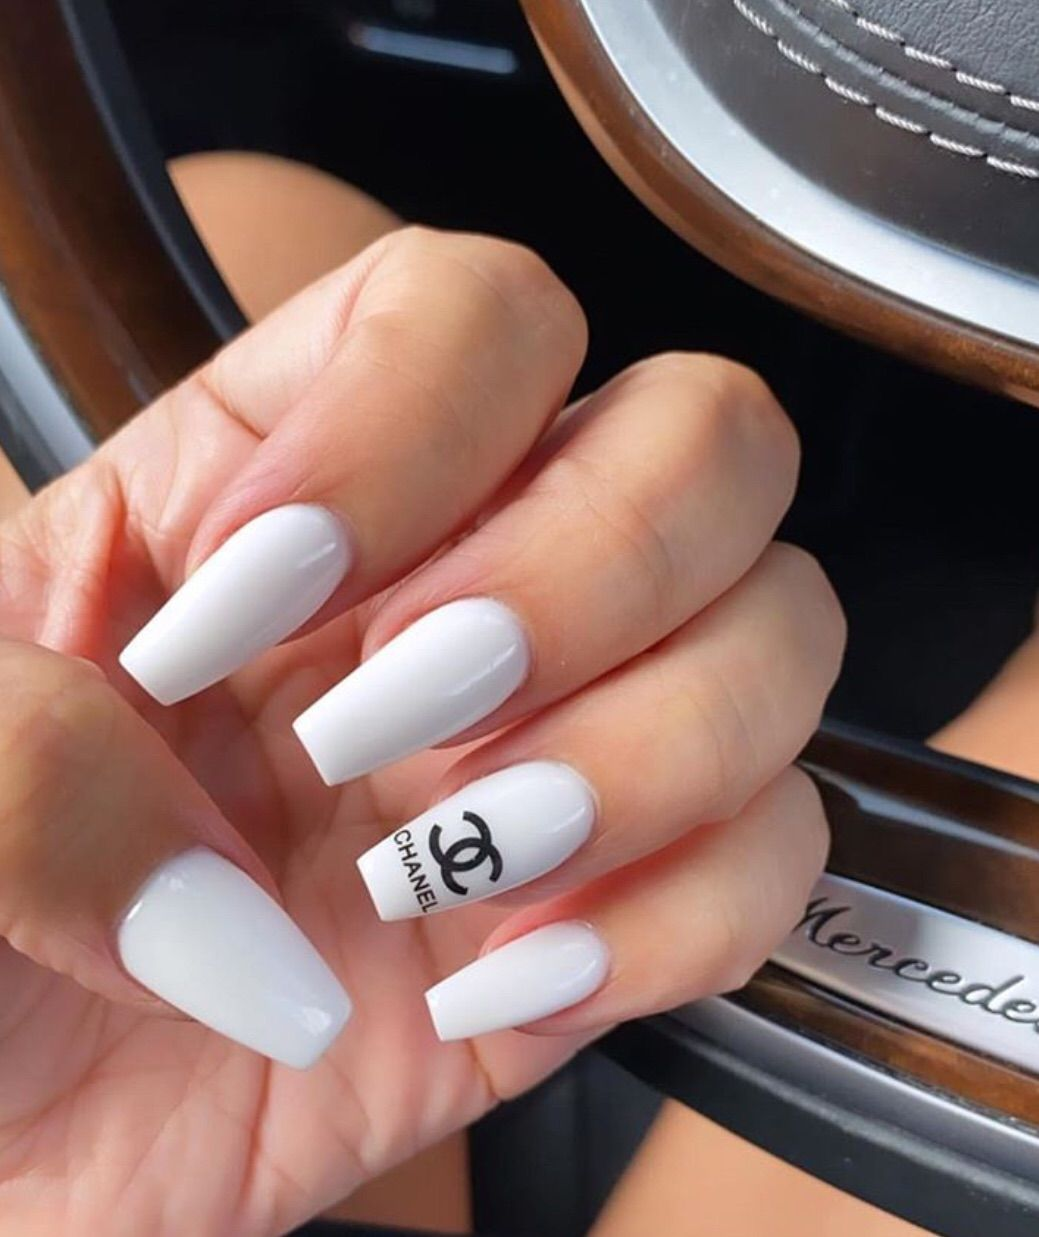 Discovered By Felicia Townes Find Images And Videos On We Heart It The App To Get Lost In What You In 2020 Long Acrylic Nails Fire Nails Acrylic Nails Coffin Short